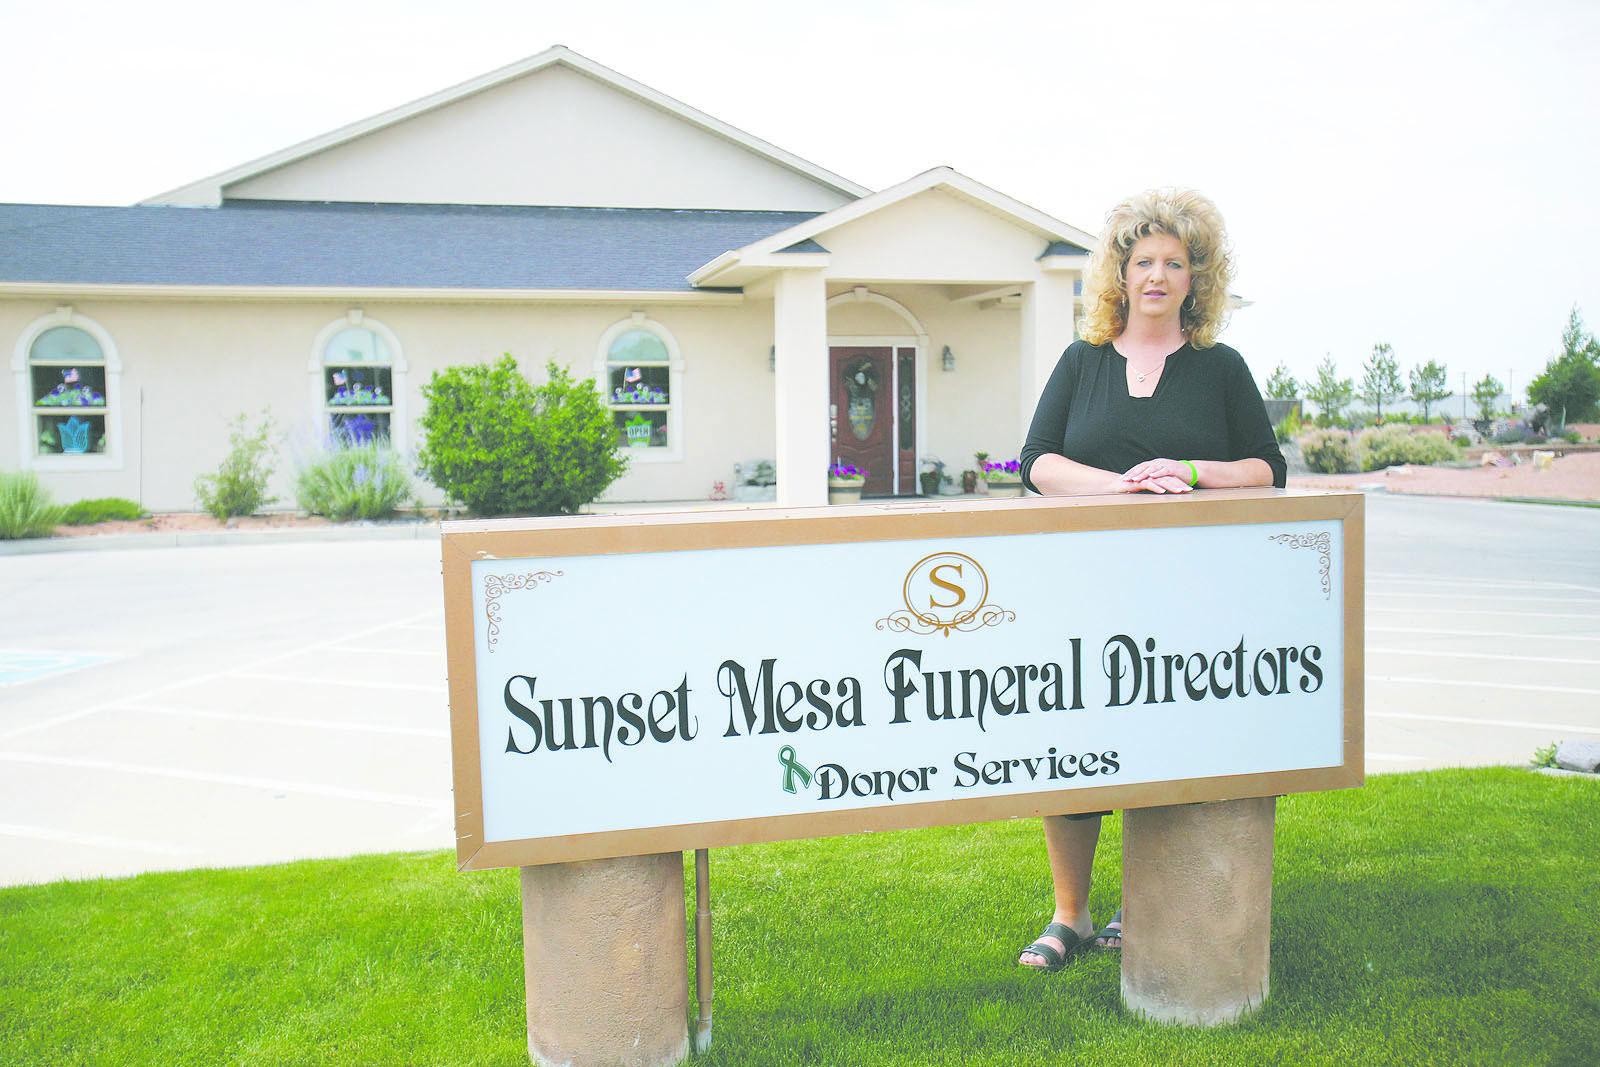 Megan Hess ran a body brokering business under the same roof as Sunset Mesa Funeral Directors. Though that wasn't illegal at the time, she's accused of not telling families she planned to harvest their loved one's bodies, sometimes selling parts all over the world.